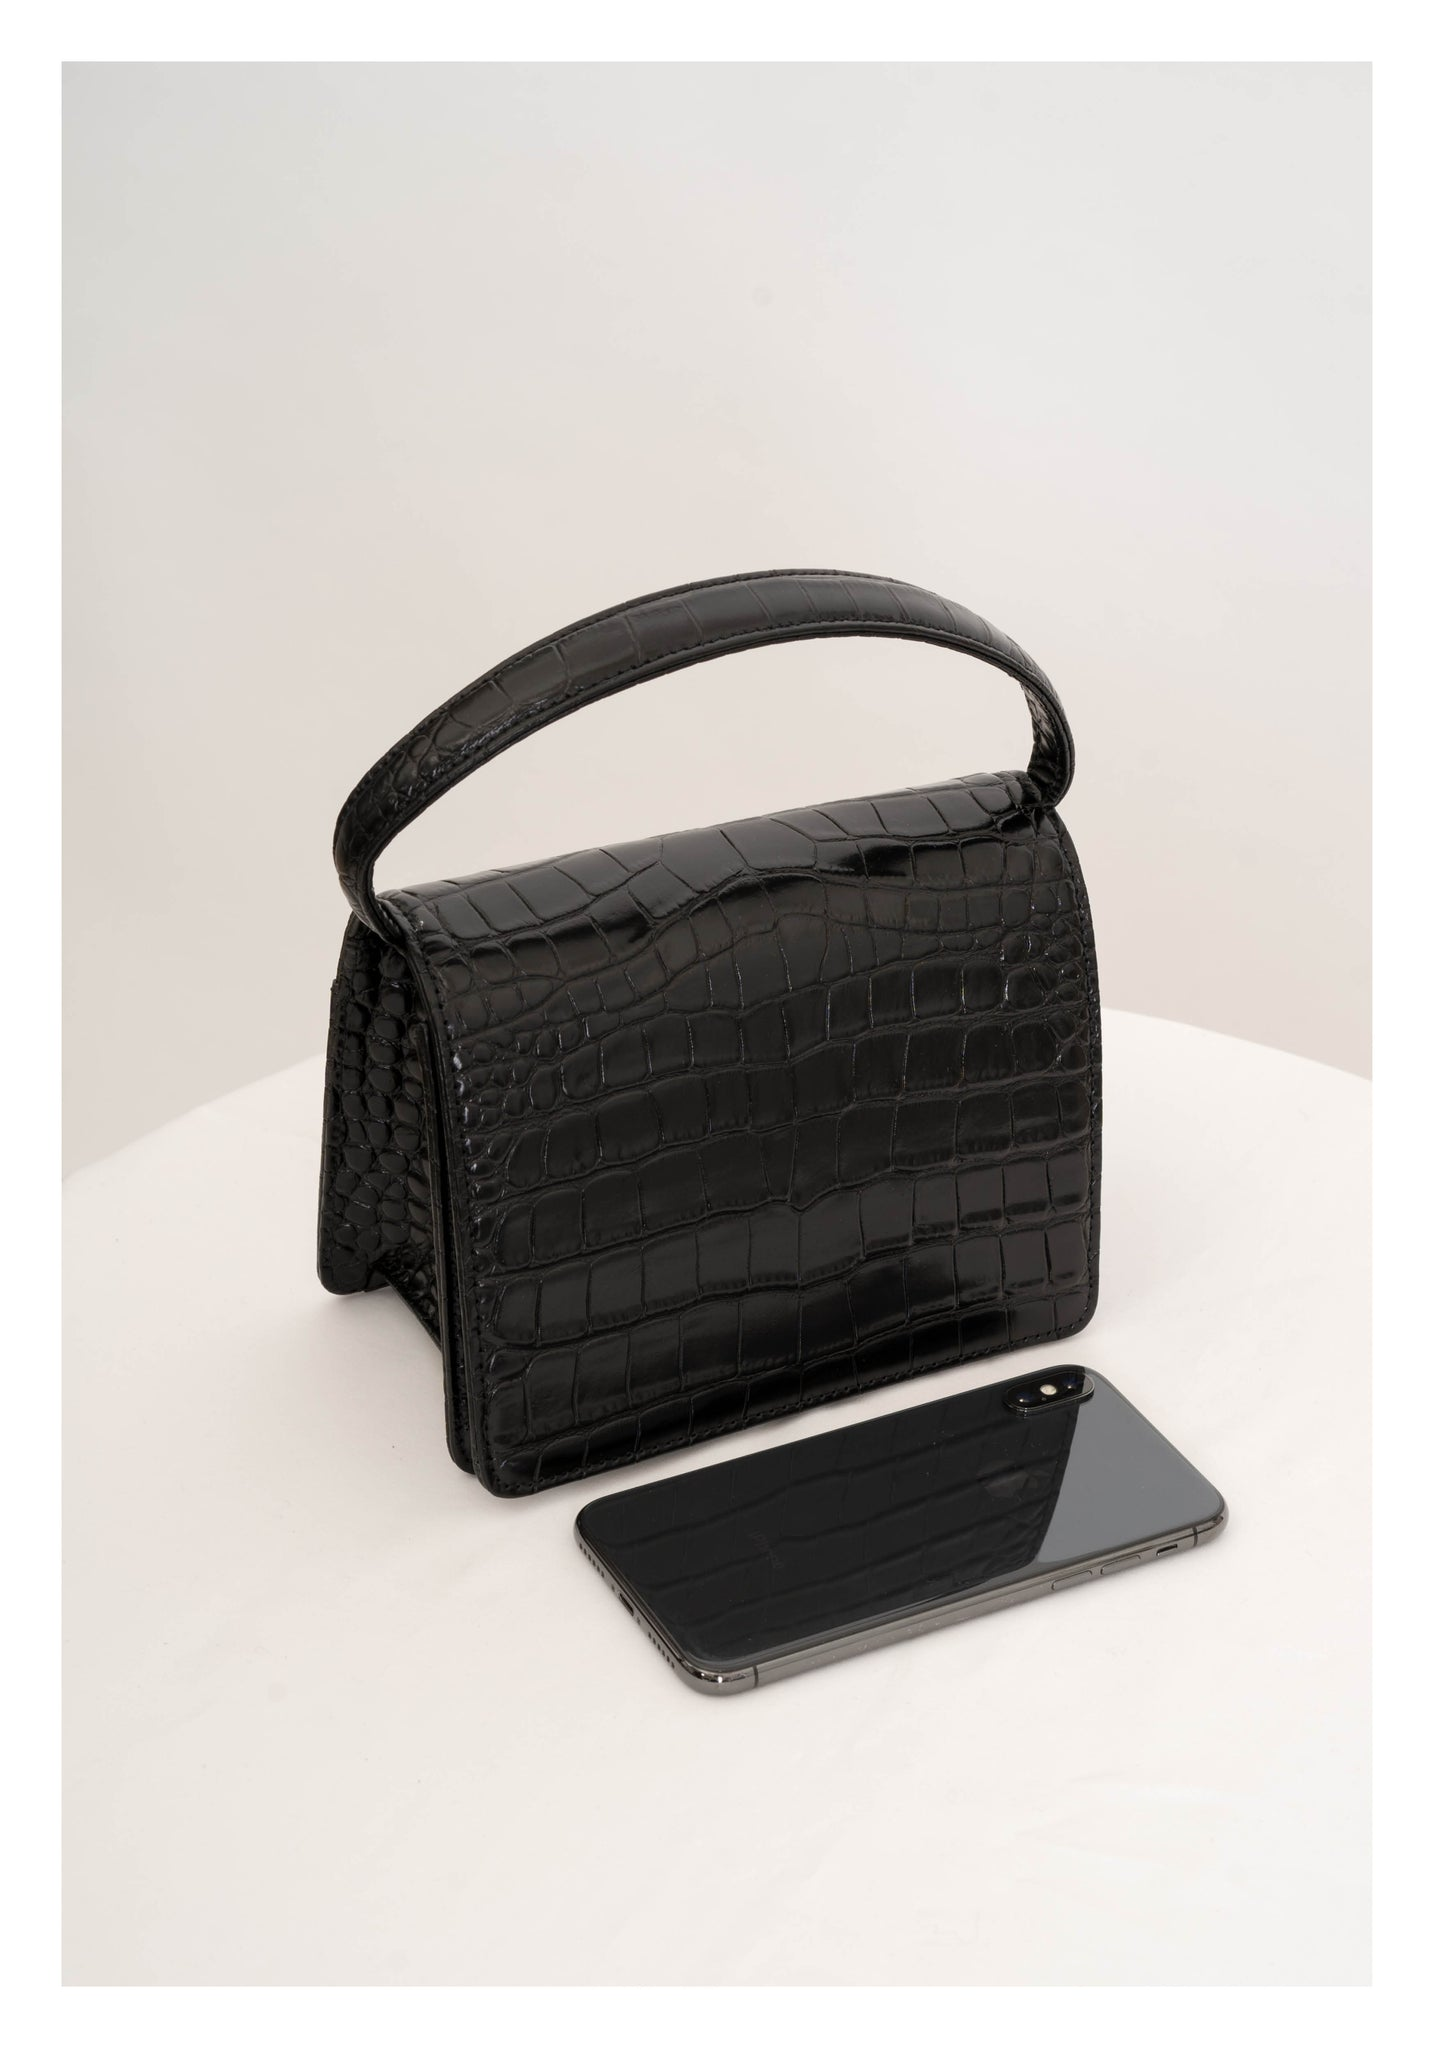 Deluxe Croc-Effect Handle Leather Bag Black - whoami